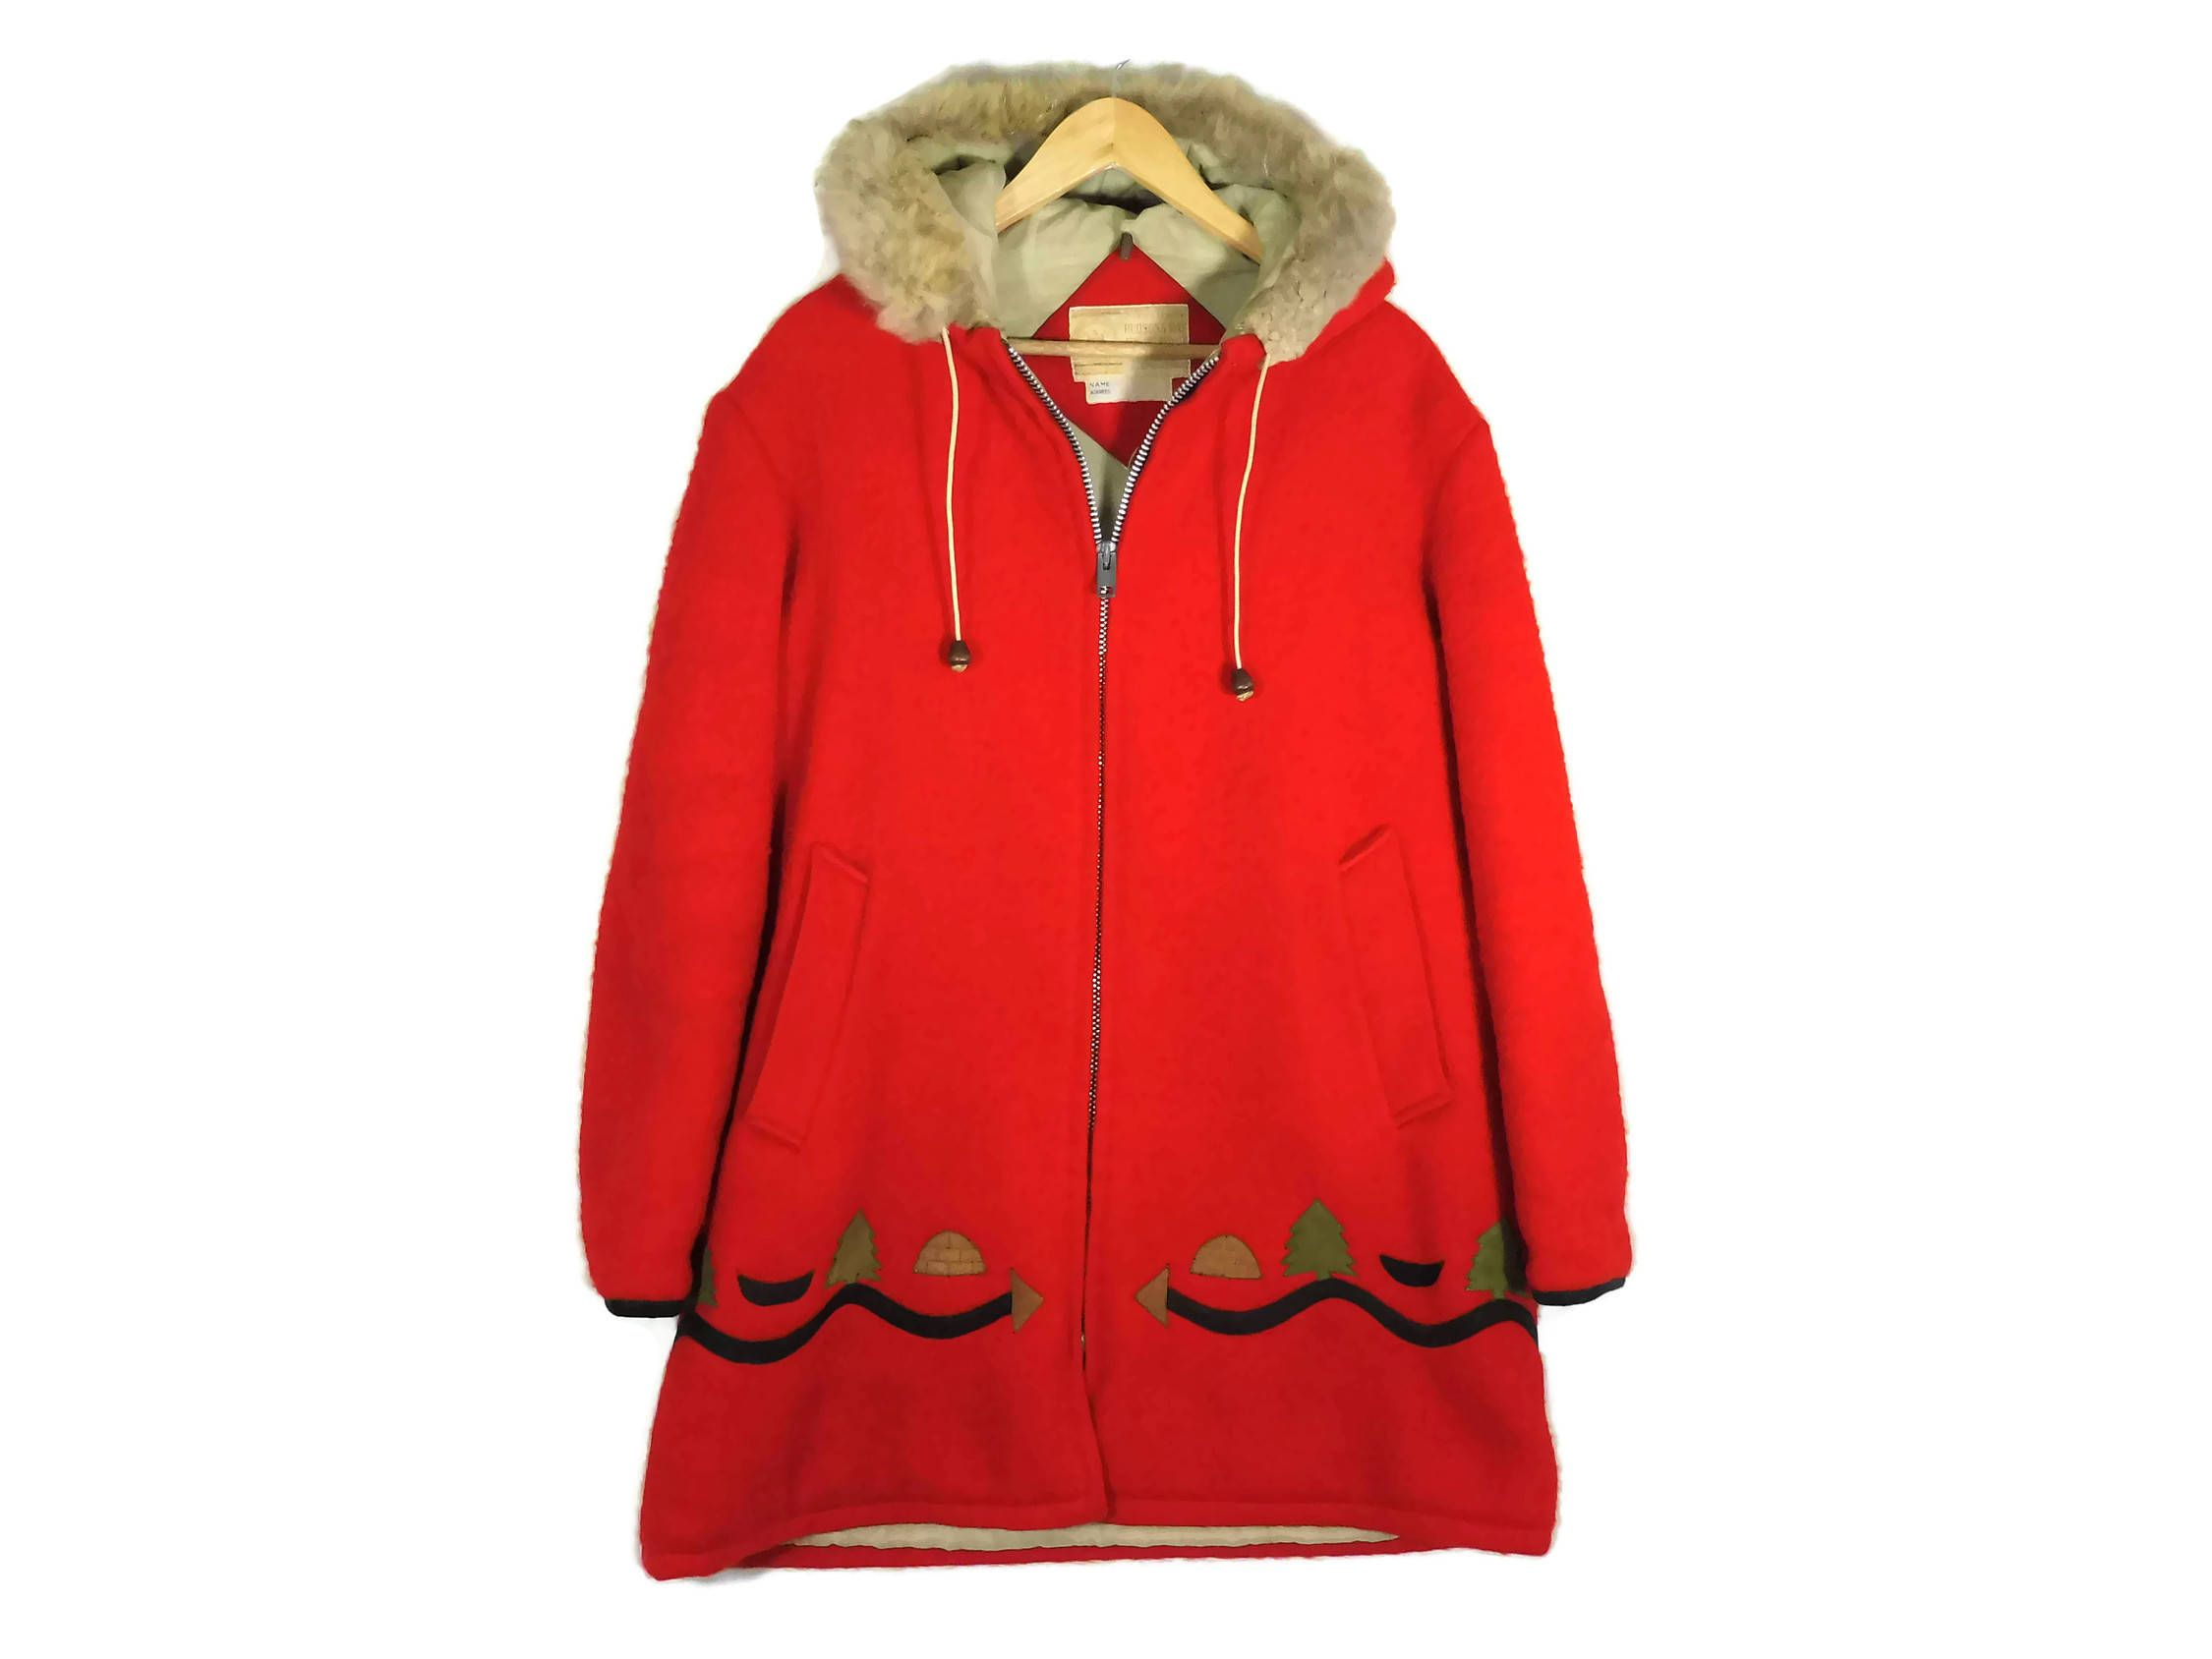 vintage 1960s hudsons bay red parka medium wool coat #0: d70ded796e7ce5e fae684